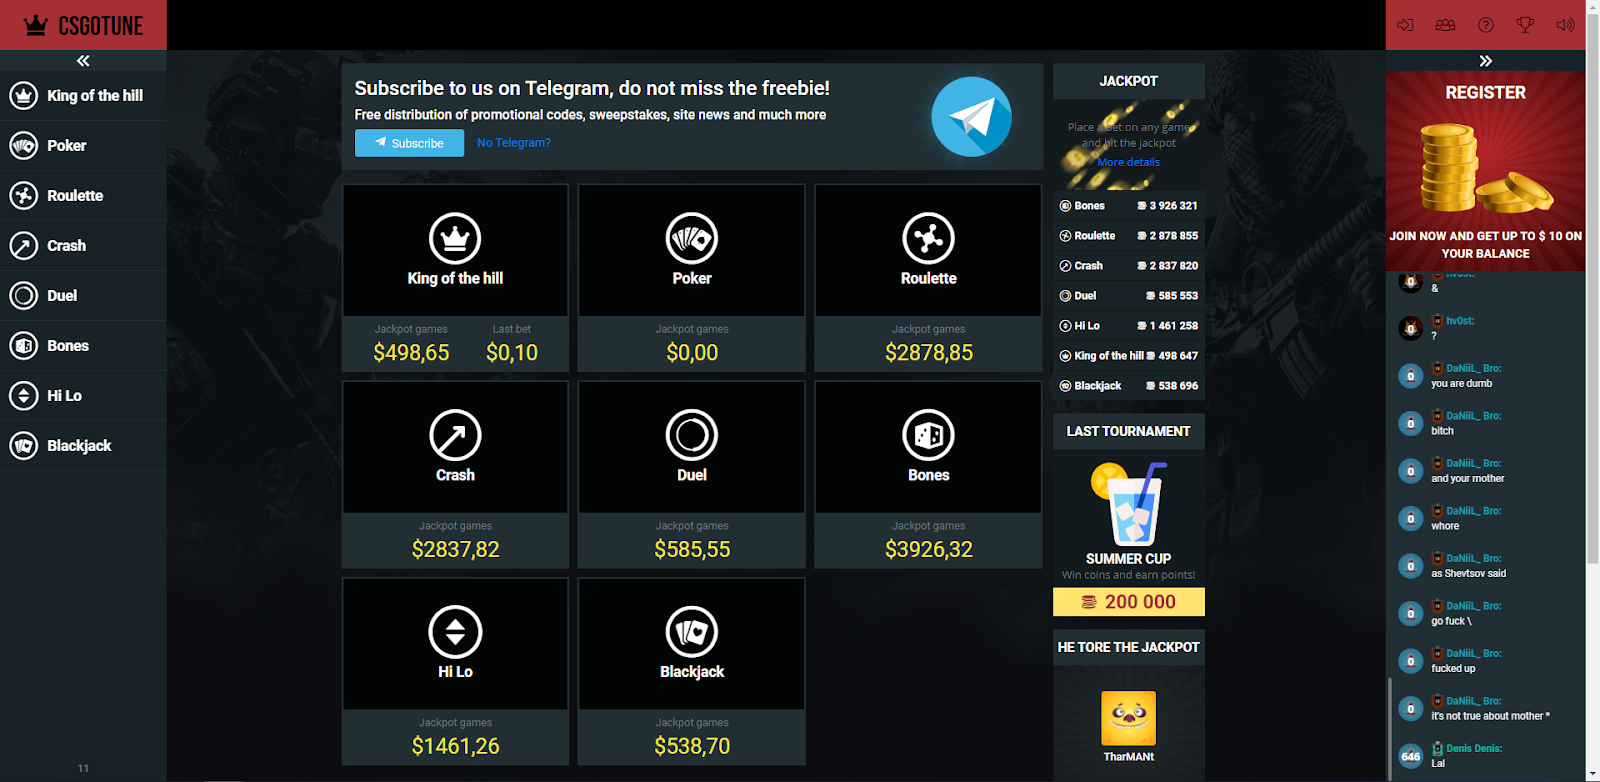 CSGOTune main page